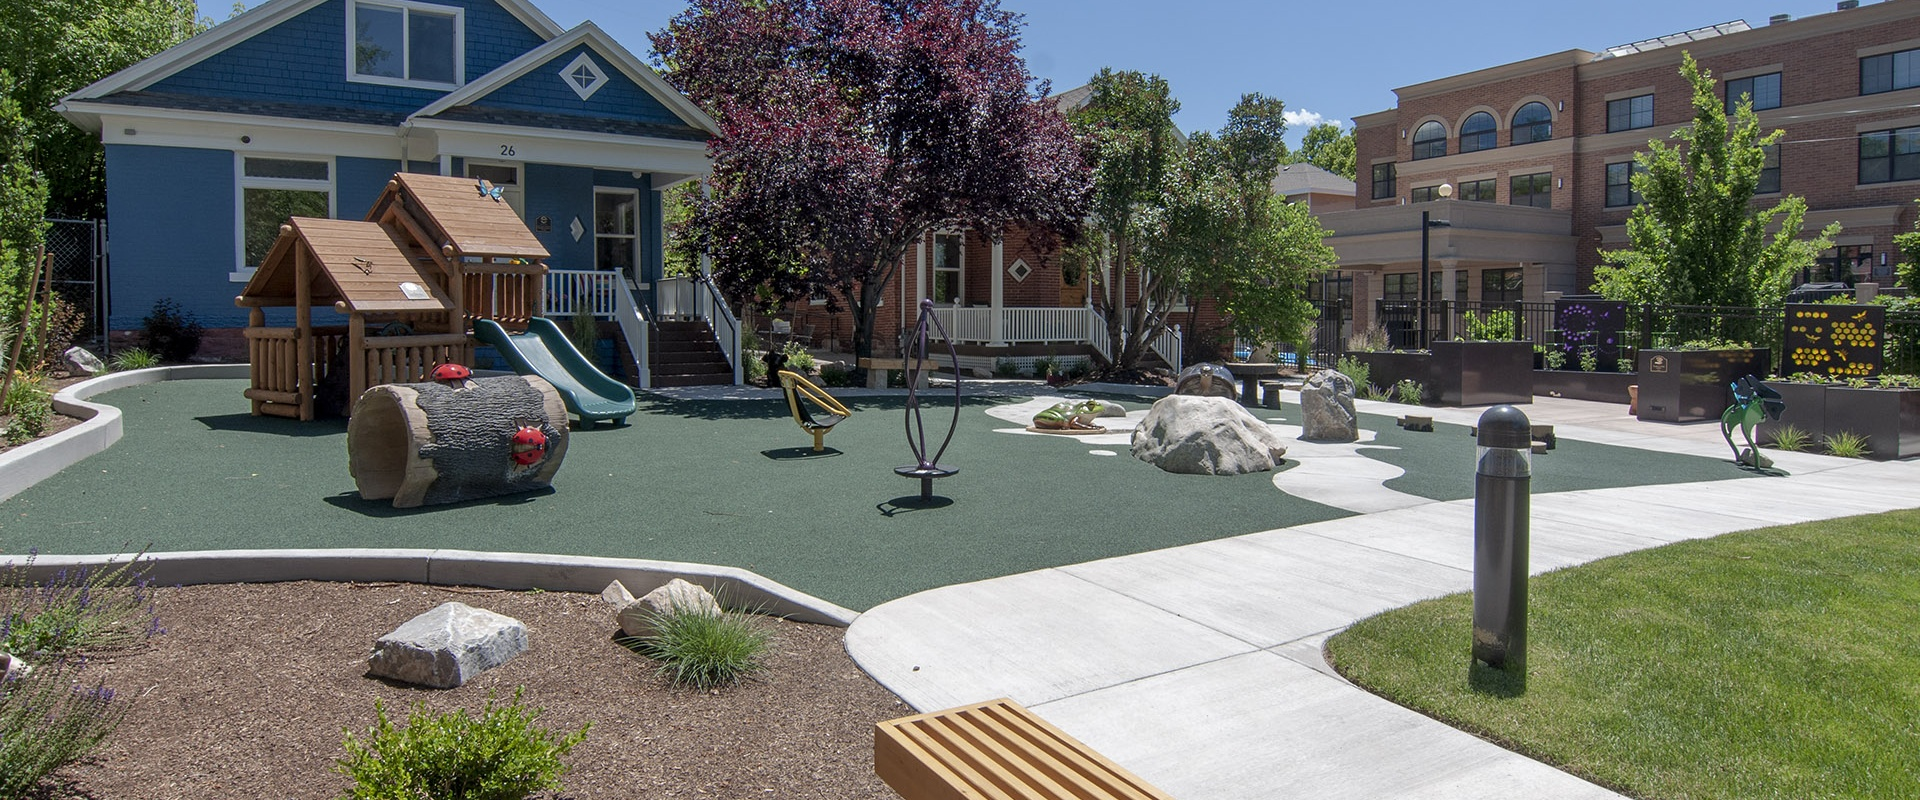 Ronald McDonald House - The Park That Love Built